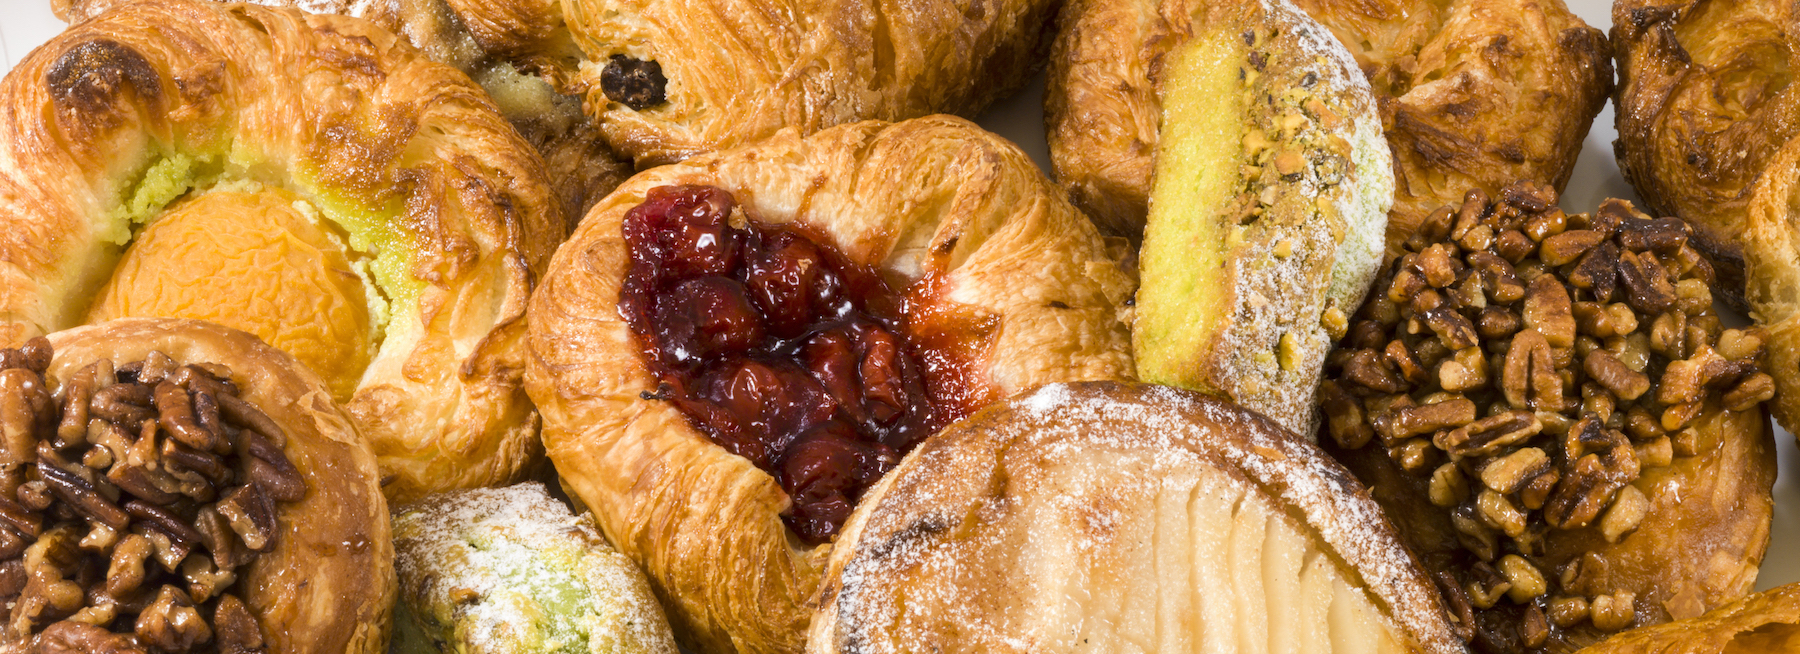 Delicious Breakfast Pastries